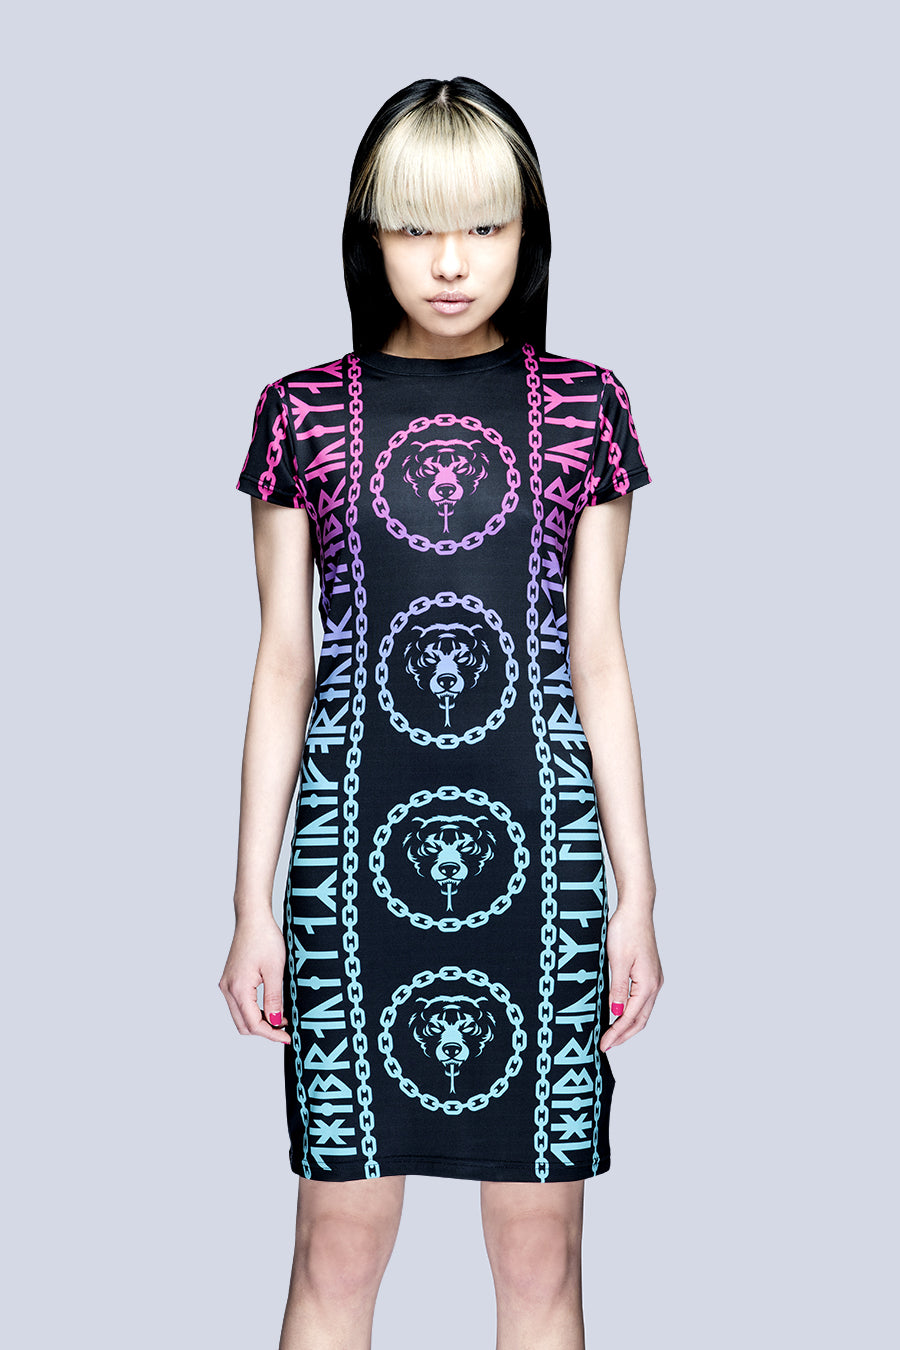 Mishka 2.0 Death Adder Chain Dress-0